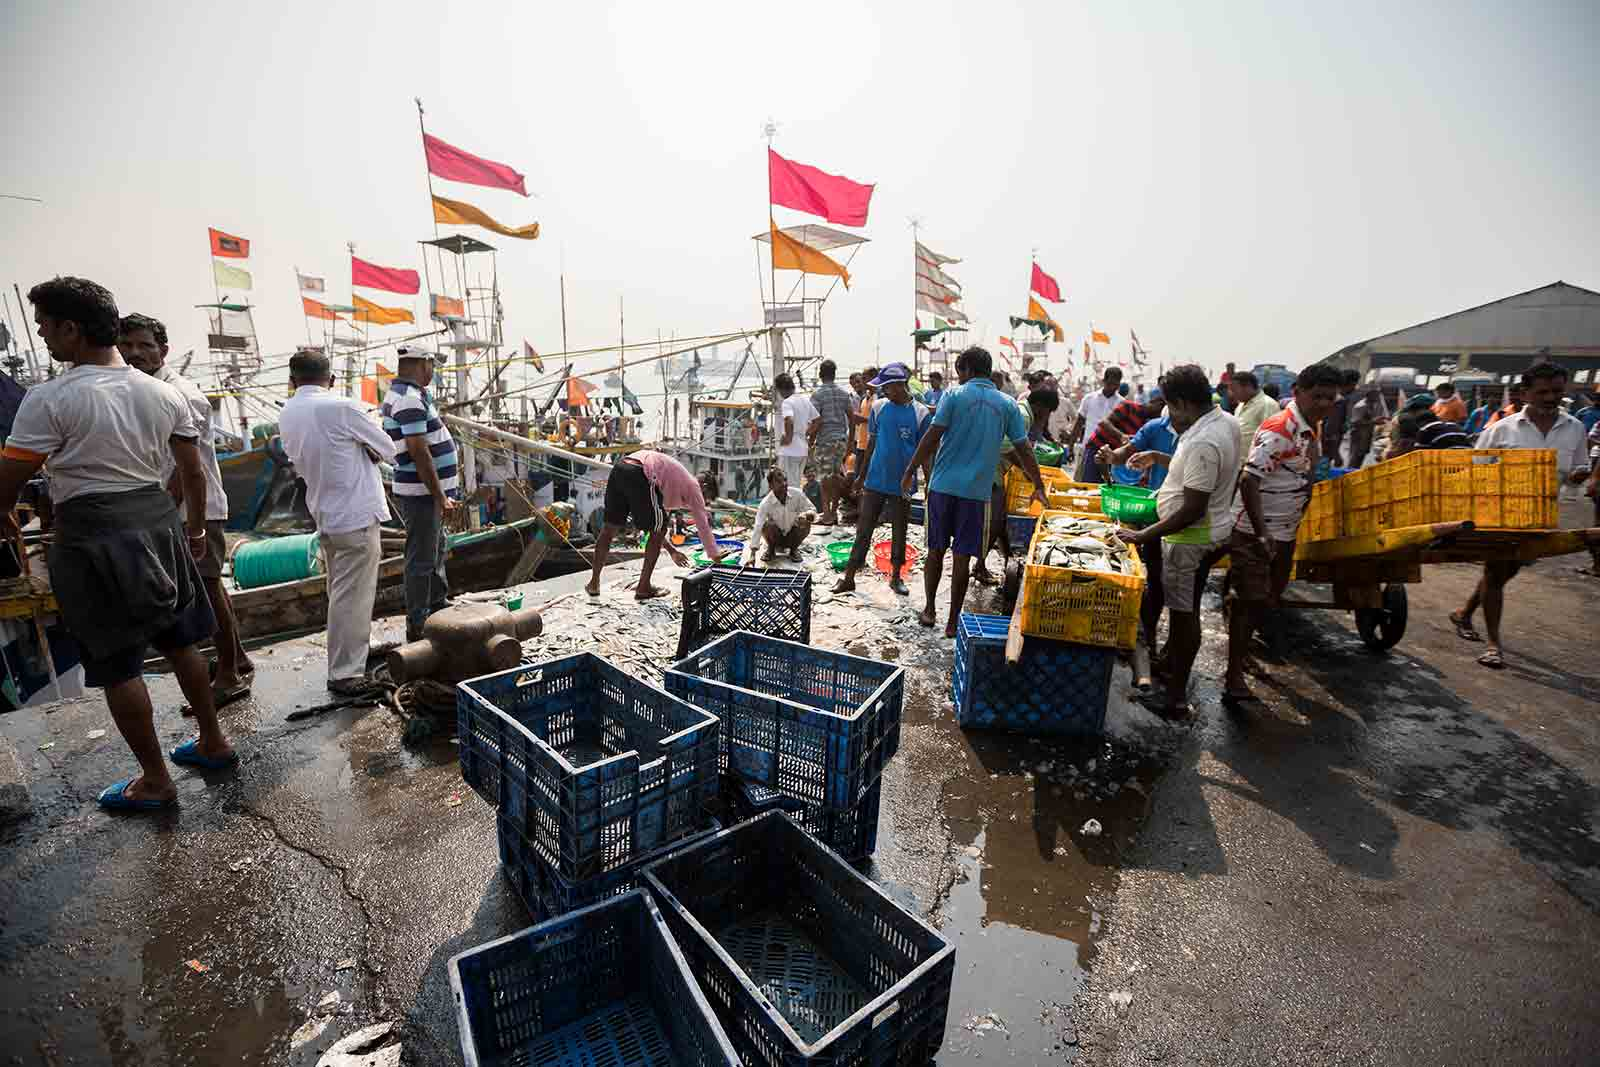 A typical day at Sassoon Docks begins at 5 am when the fresh catch is brought in from the sea.